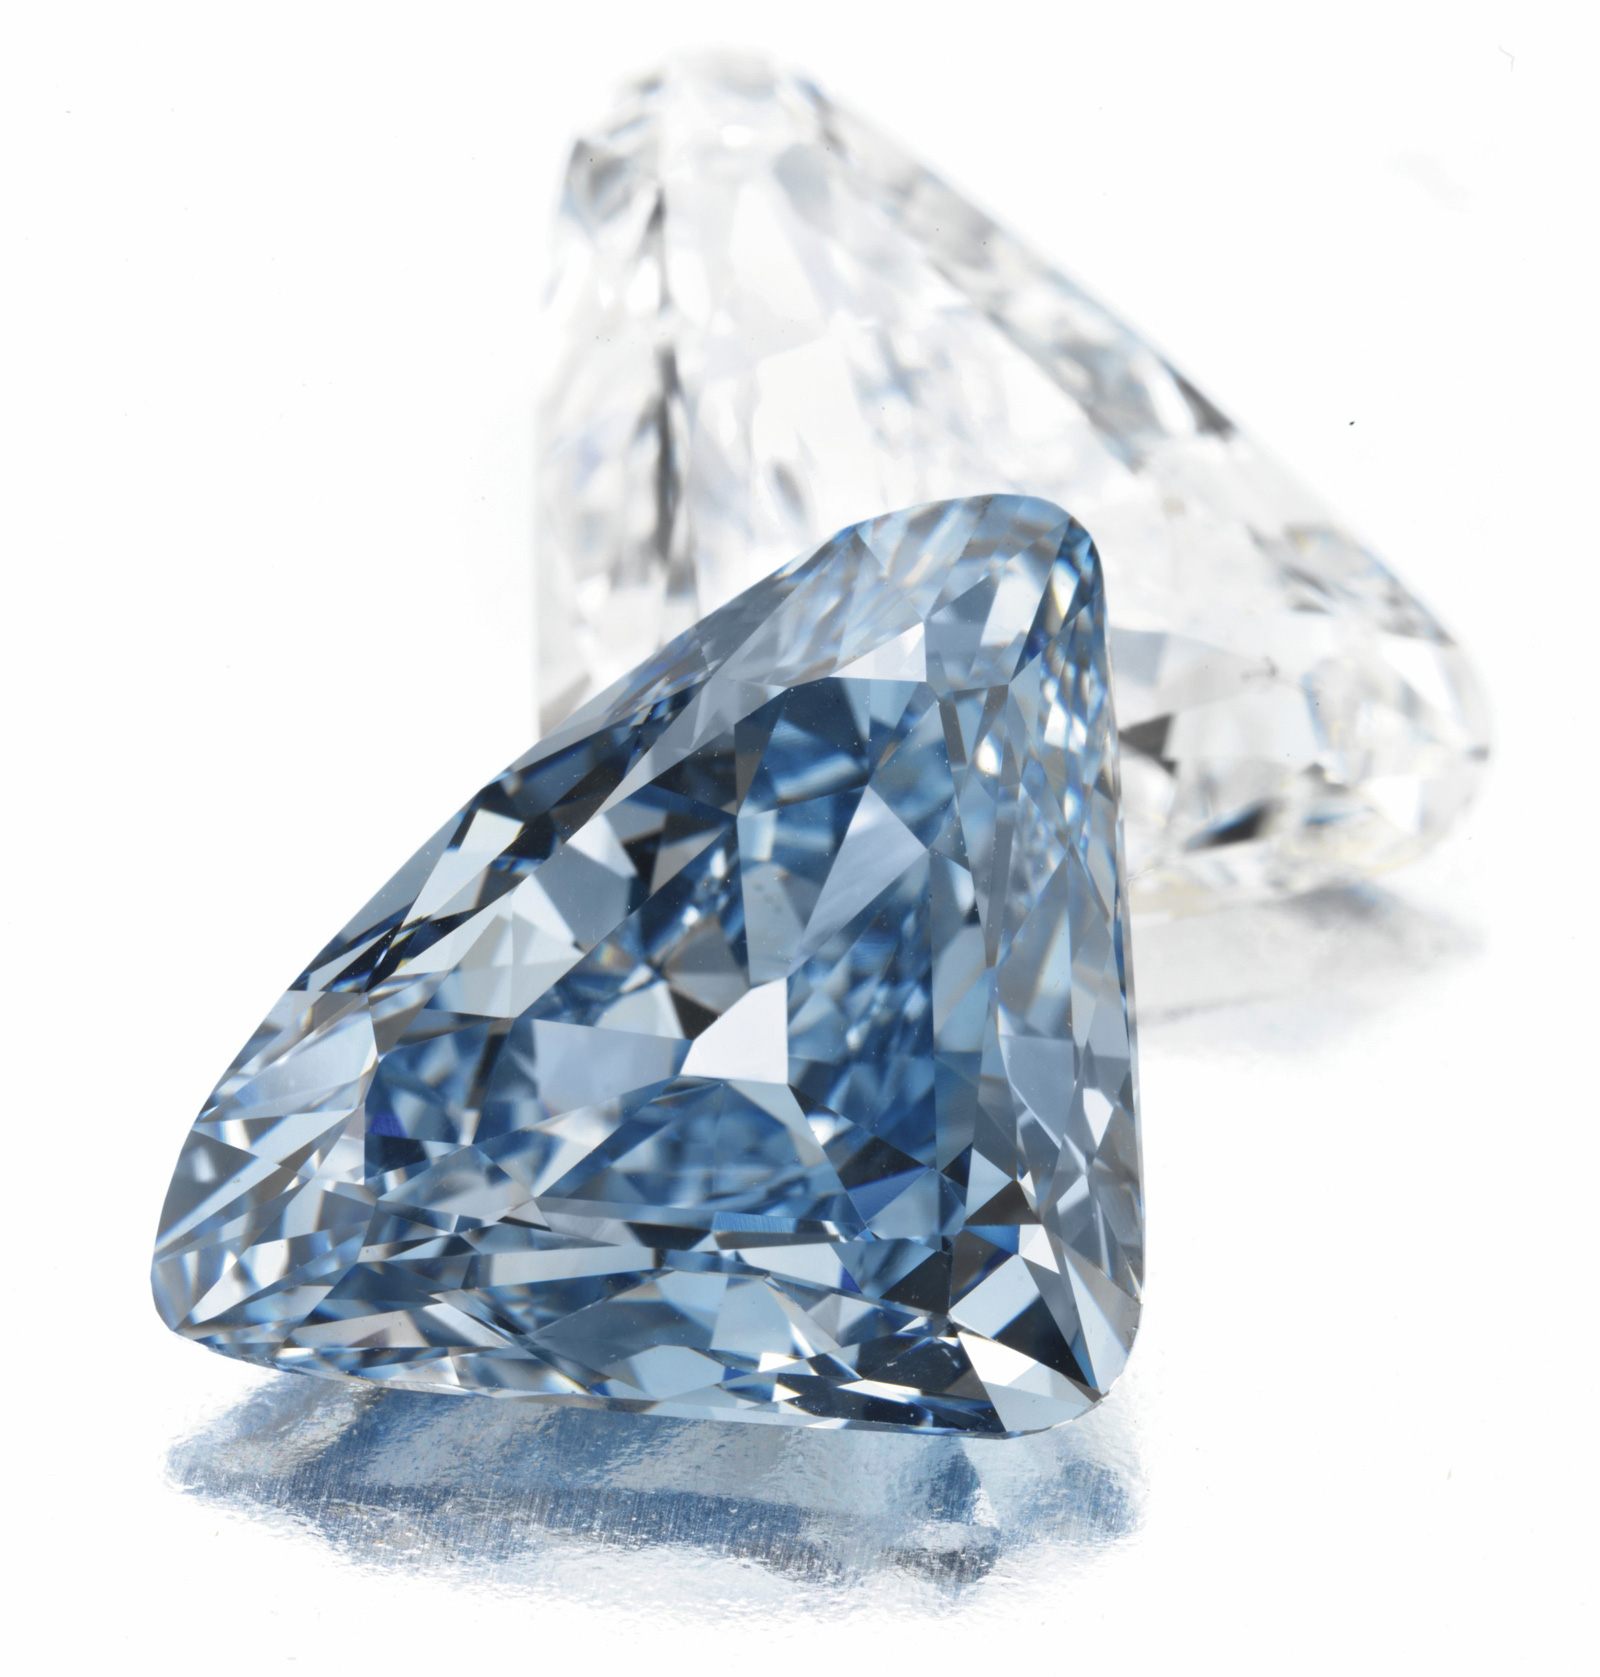 BVLGARI Blue Diamond, the largest triangular-shaped Fancy Vivid blue diamond